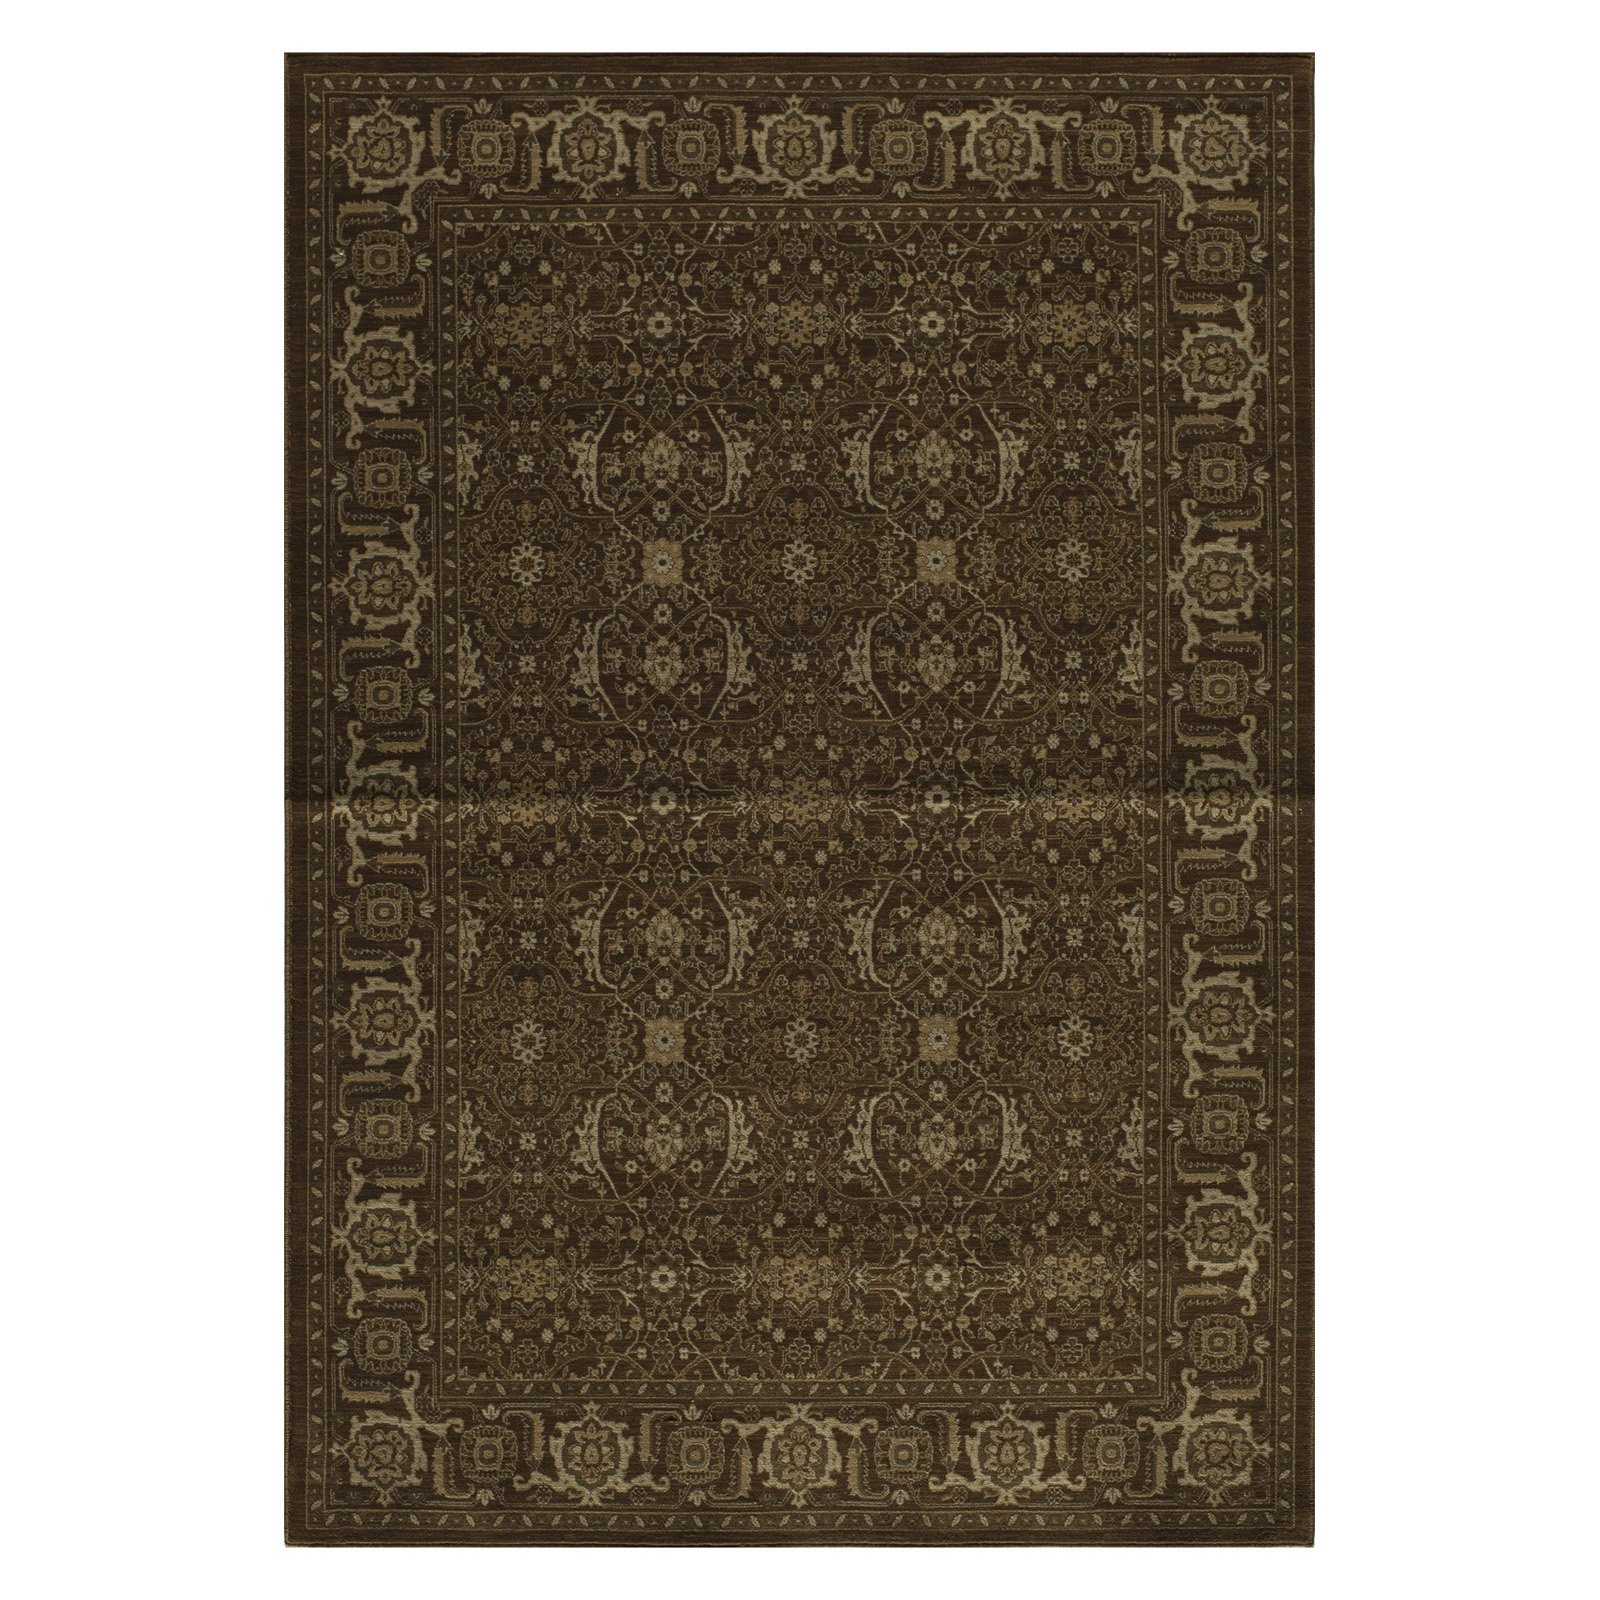 Area Rug in Chocolate (3 ft.  L x 2 ft. W)